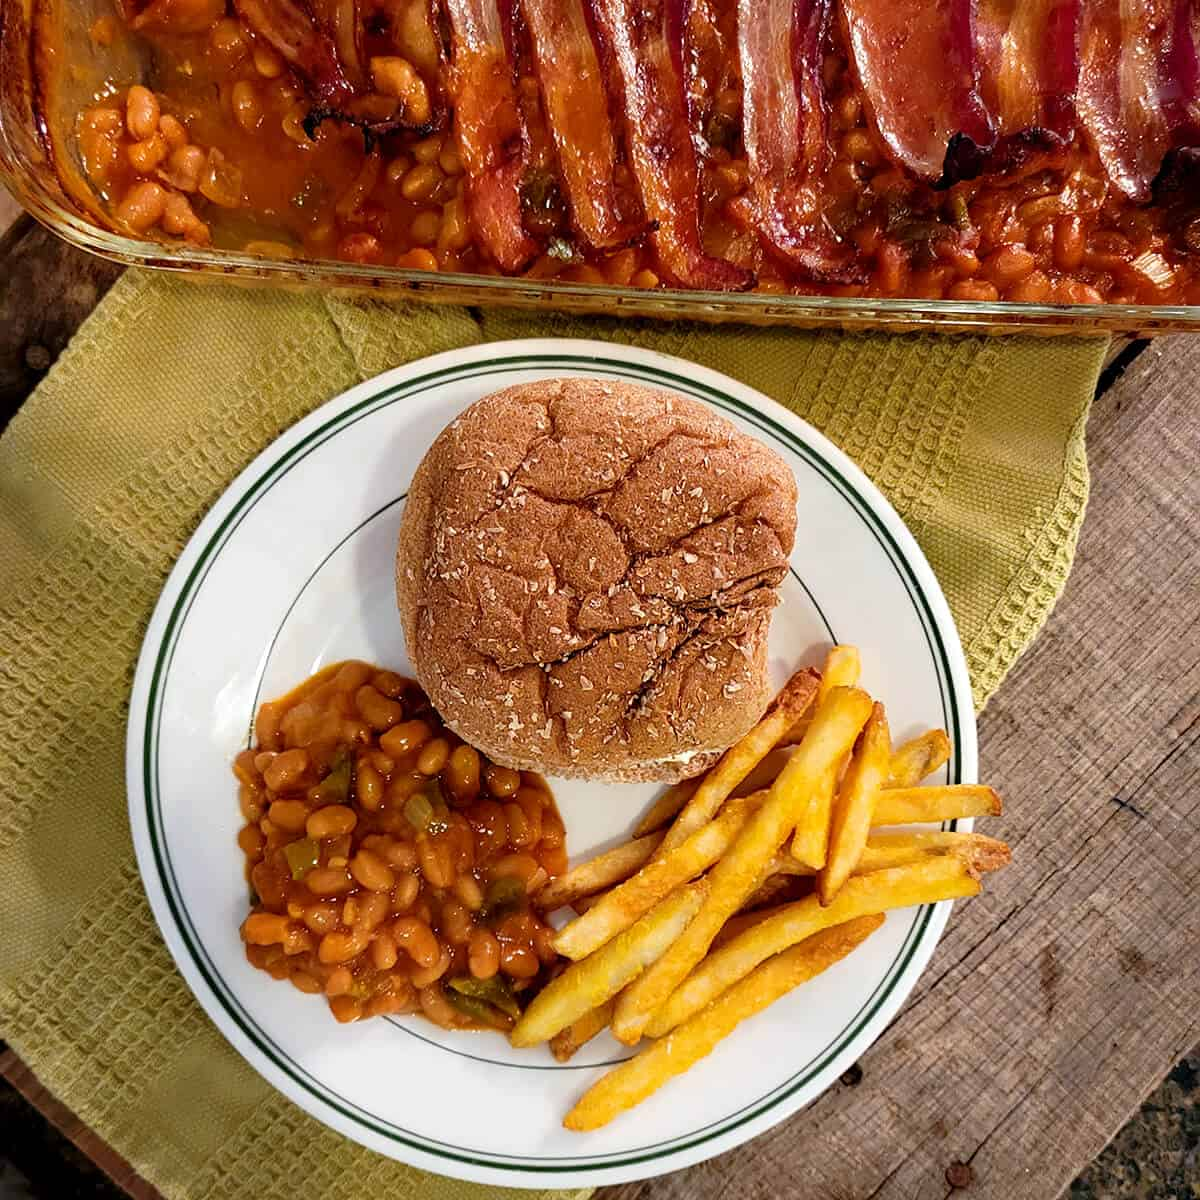 Baked beans and bacon on a plate with a hamburger and fries.